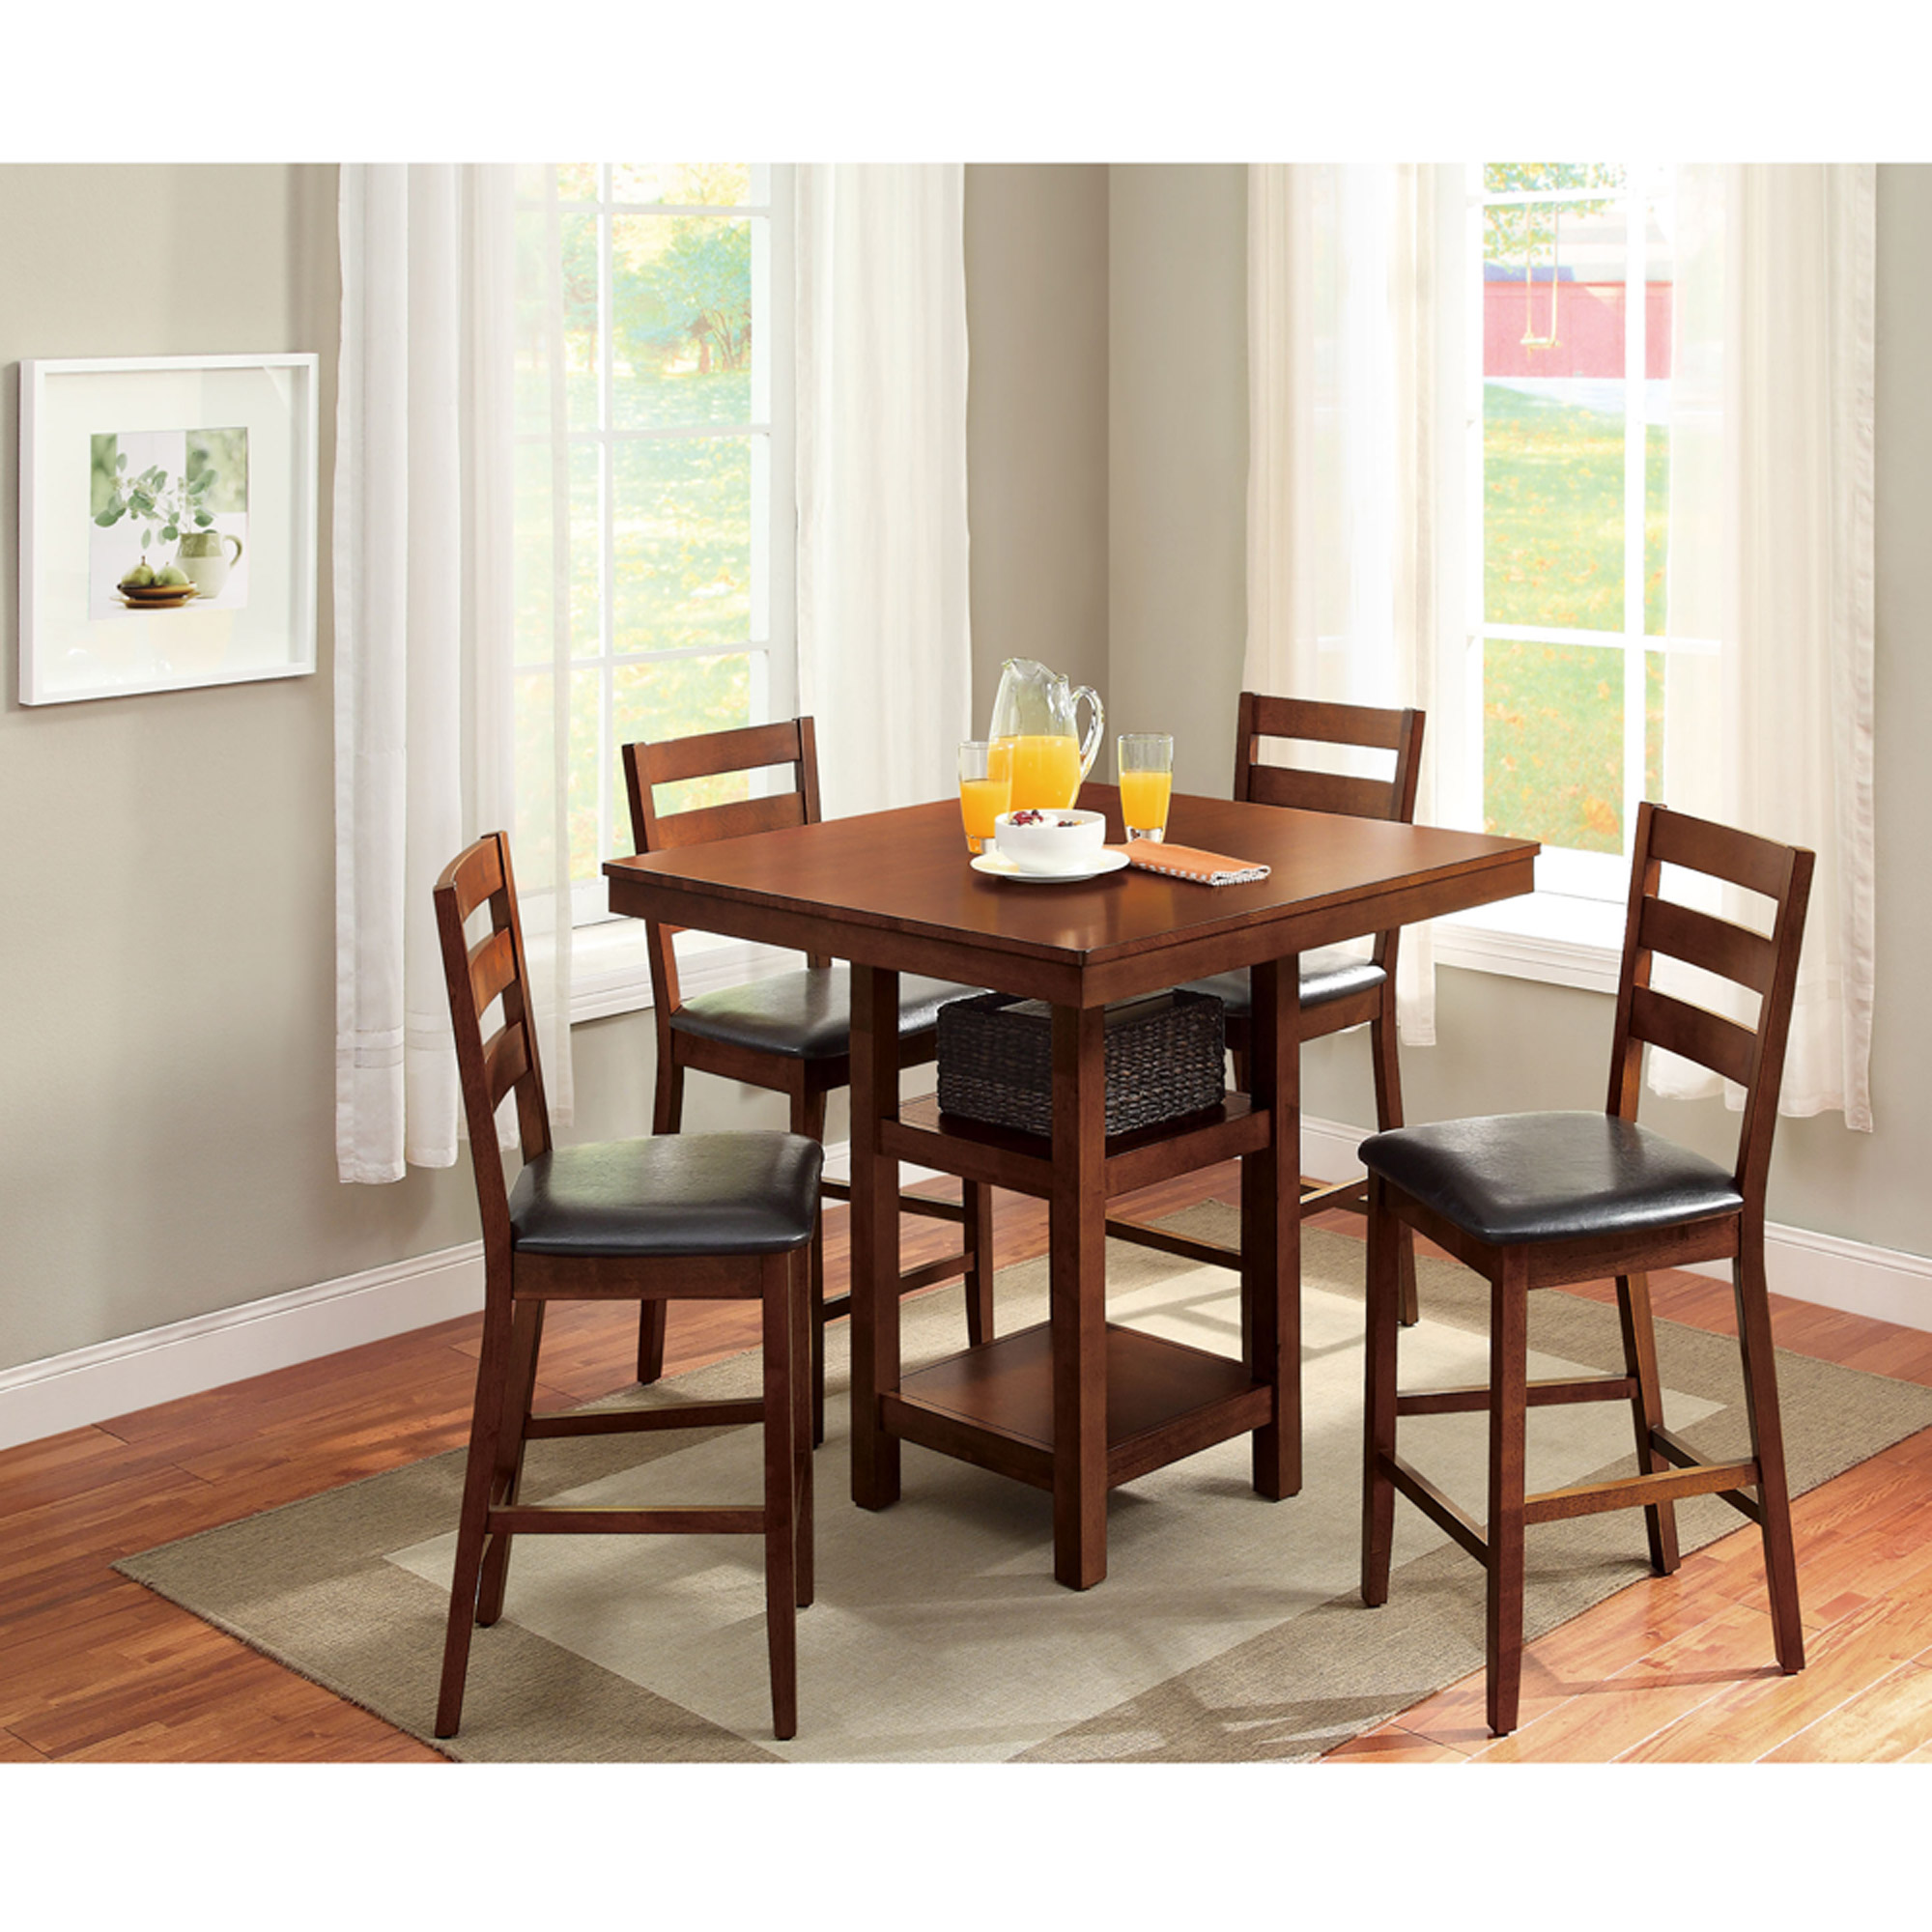 42 inch round counter height dining table tall product image better homes gardens dalton park 5piece counter height dining set sets walmartcom